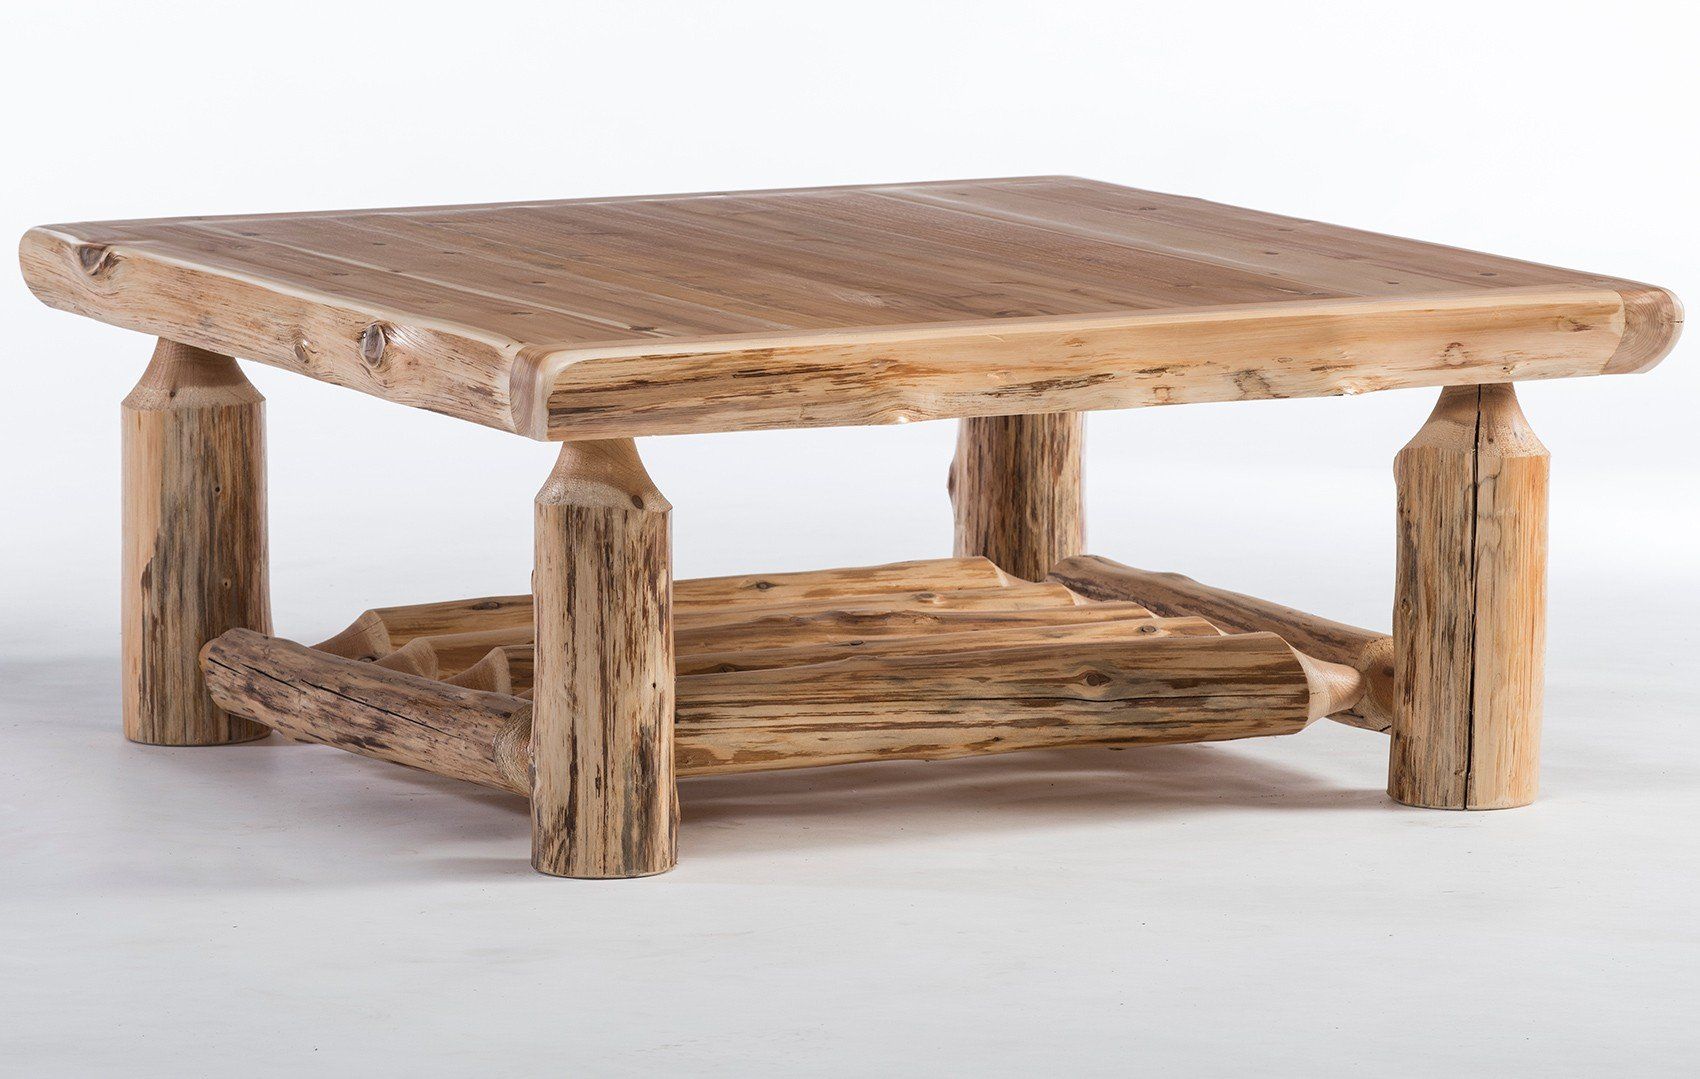 rustic log coffee tables whole end made from logs cedar lake solid wood square table lexington furniture wrought iron set small corner side slim grey bedside muebleria ashley